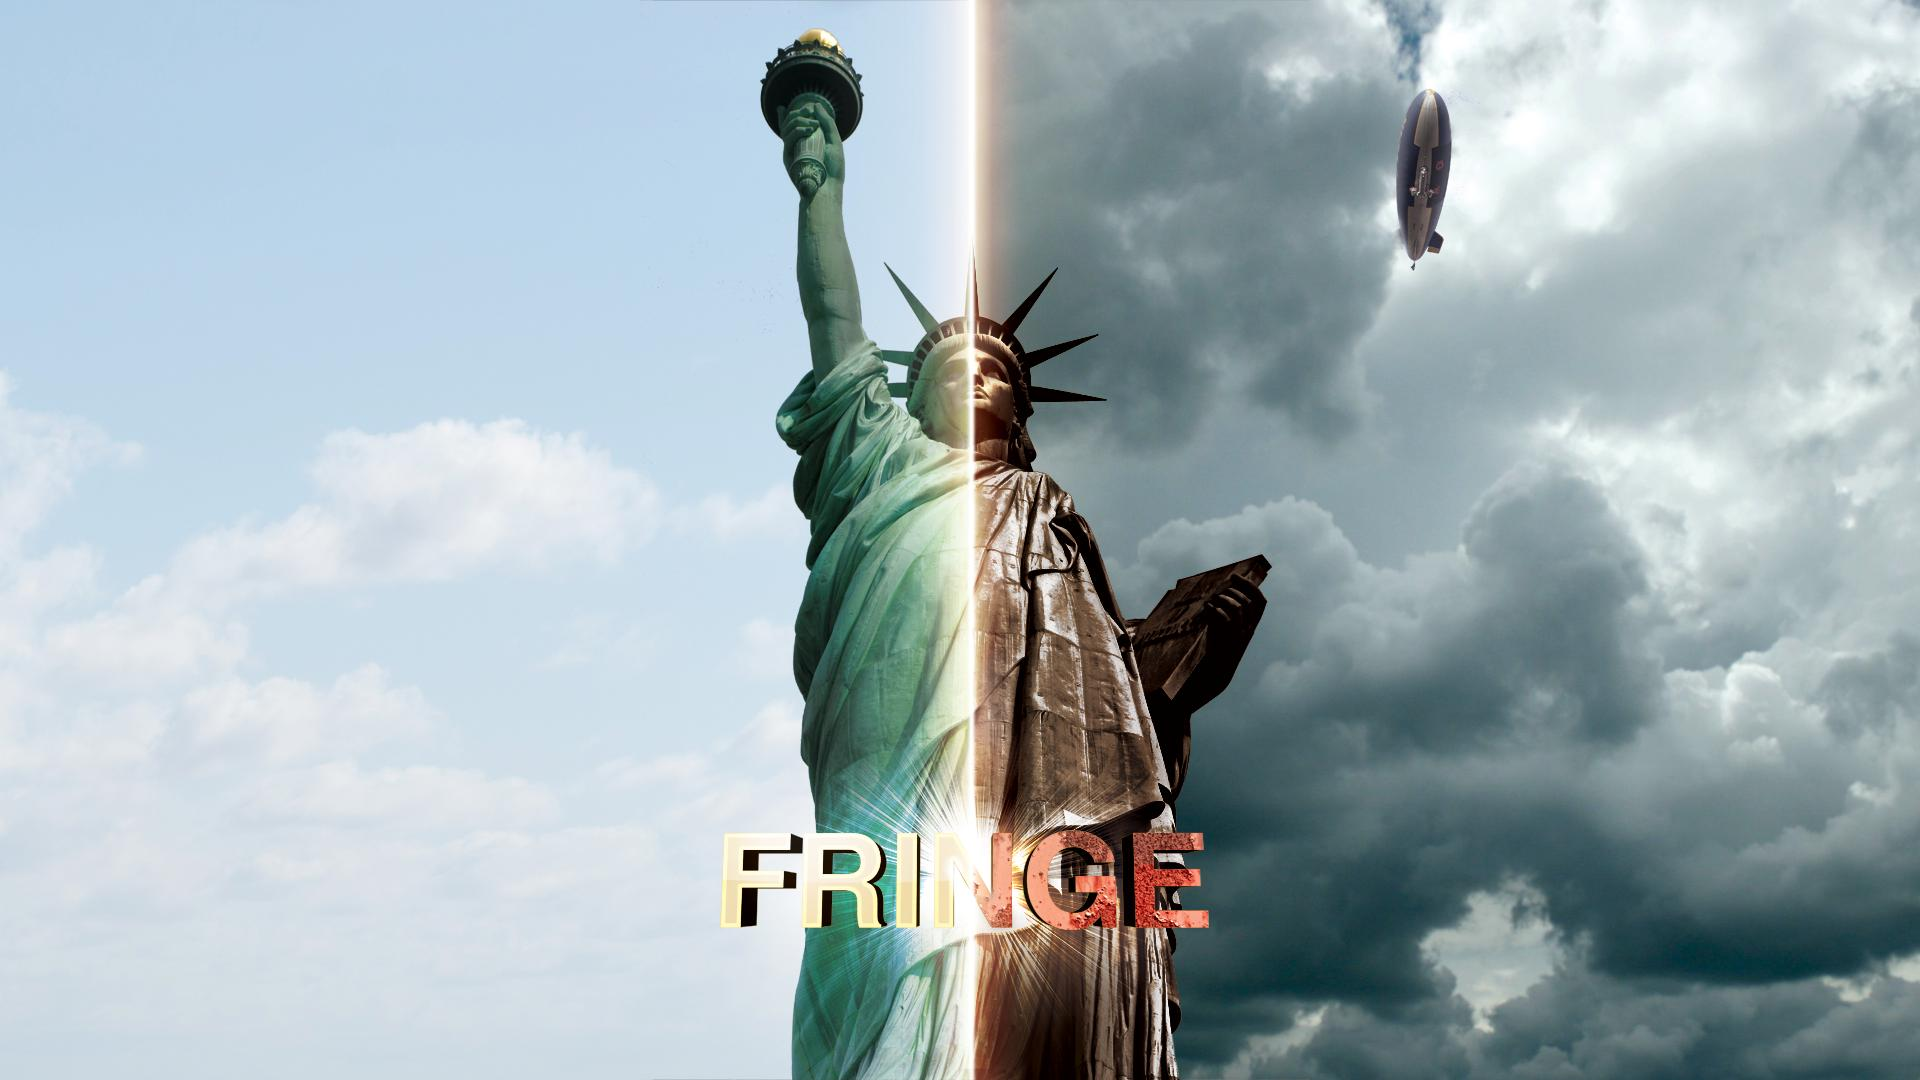 Fringe Computer Wallpapers Desktop Backgrounds 1920x1080 ID 1920x1080